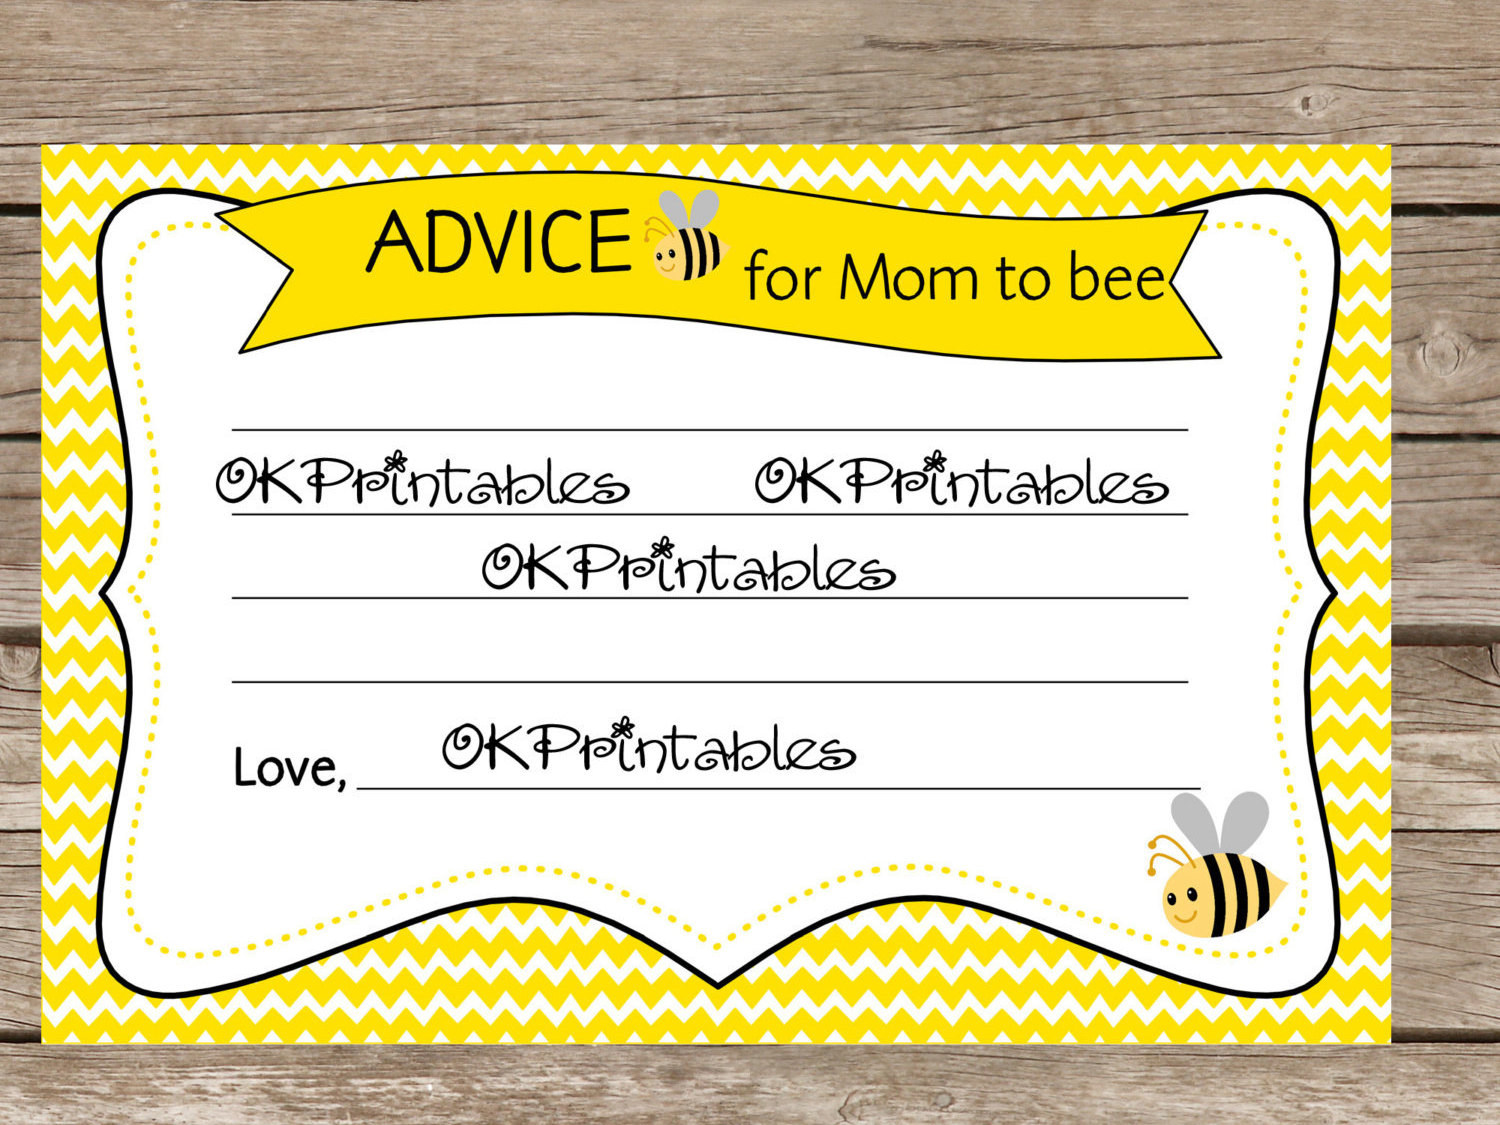 Bumble Bee Advice Cards